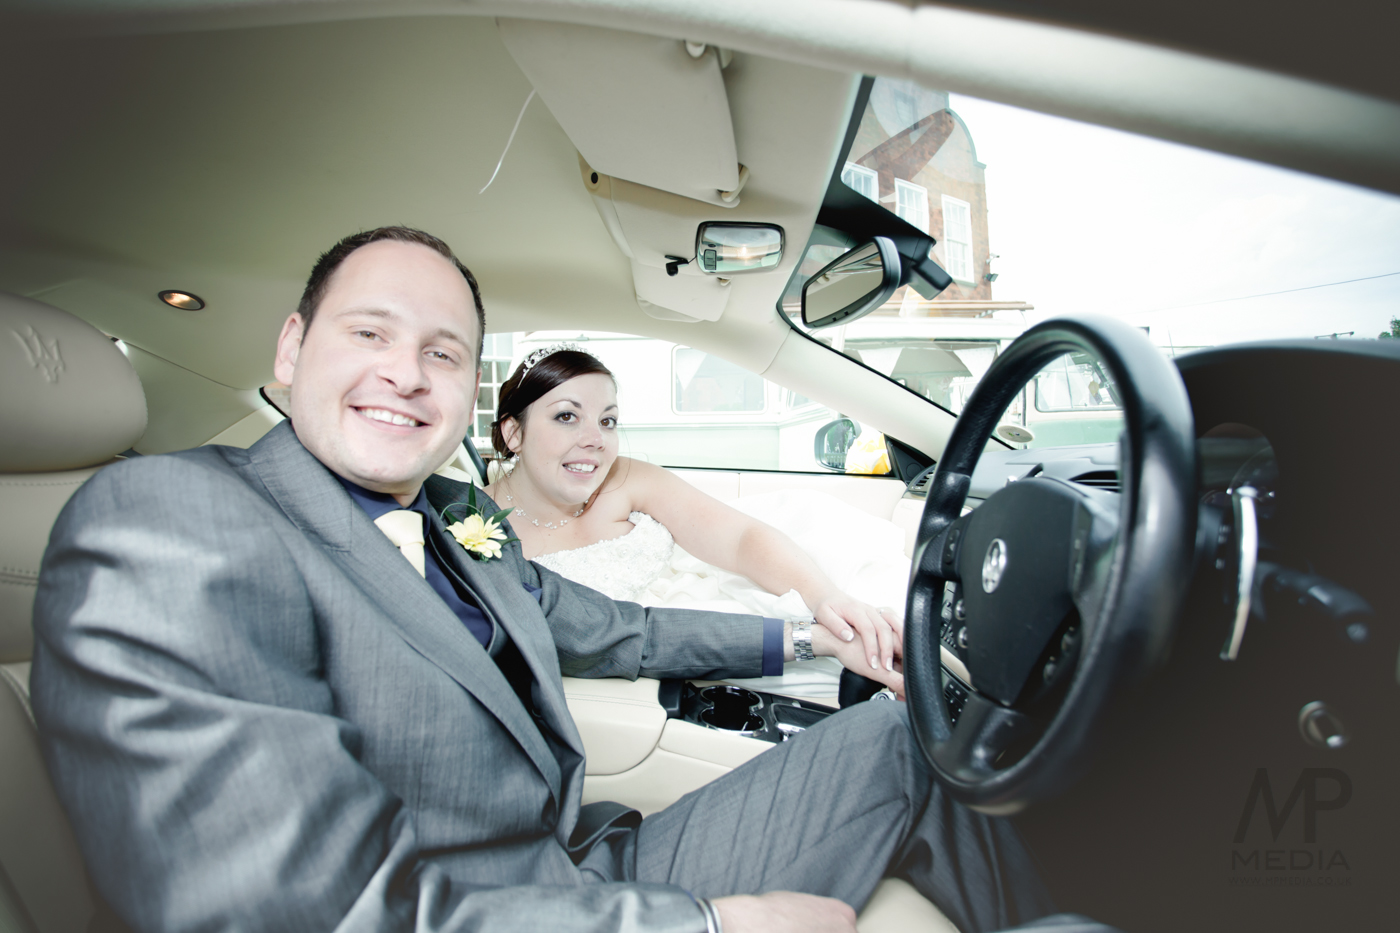 384 - Chris and Natalies Wedding (MAIN) - DO NOT SHARE THIS IMAGES ONLINE -0732.JPG